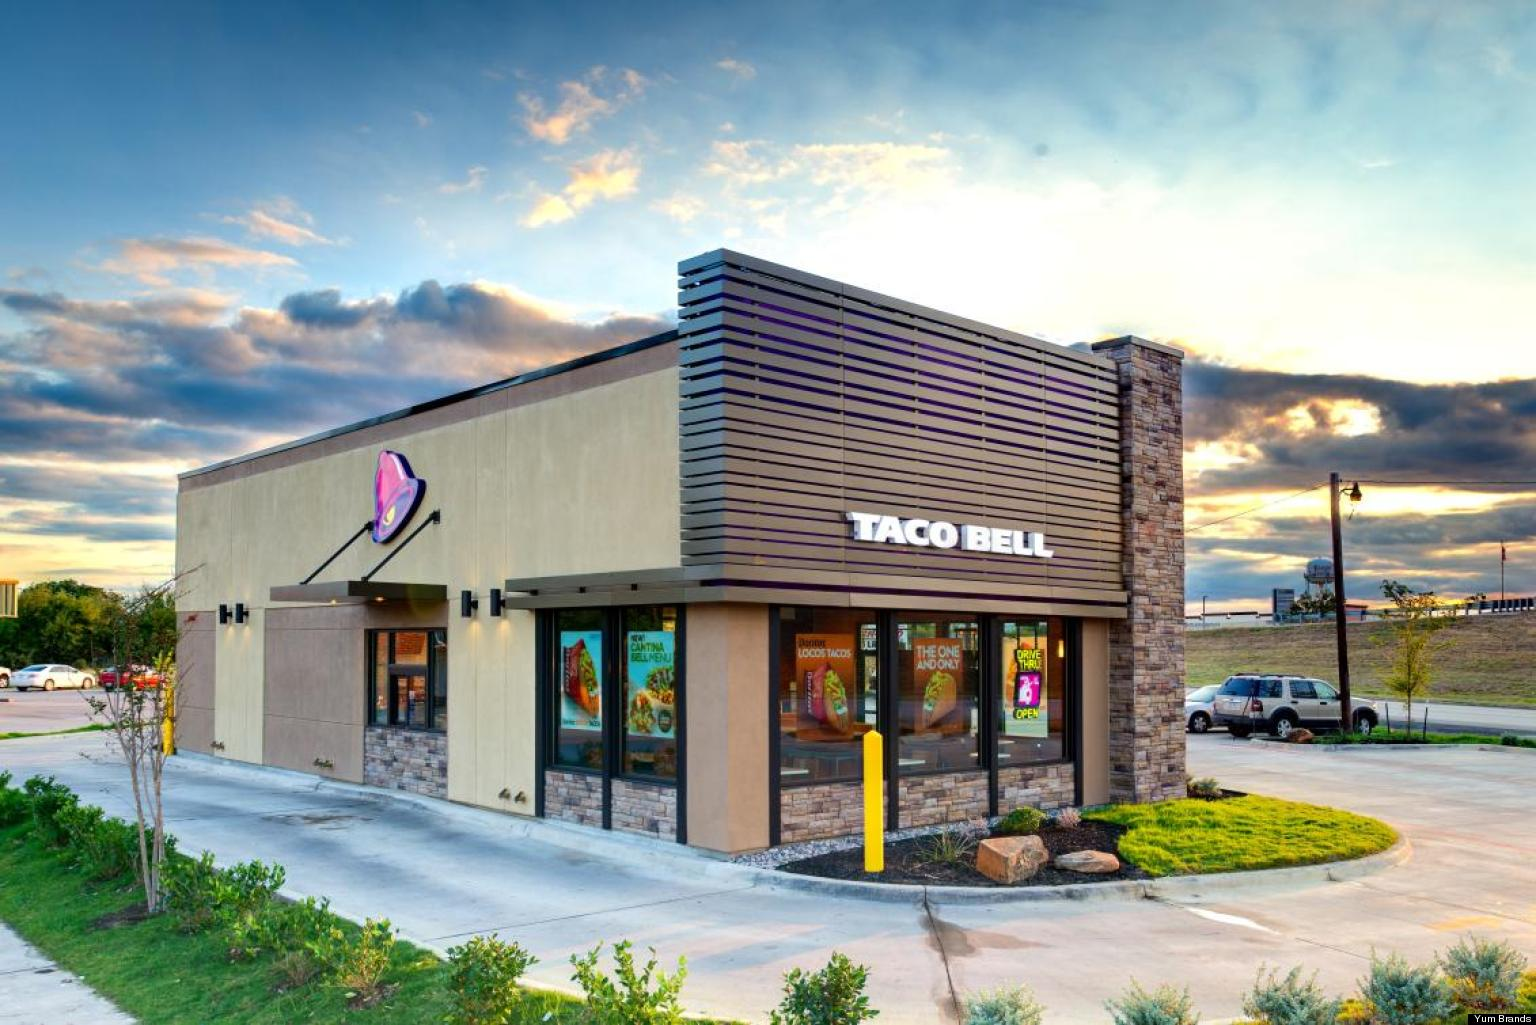 Fast Food Building Designs Unique Taco Bell Redesign To Cost Less To Build Make Exterior Glow . Design Inspiration